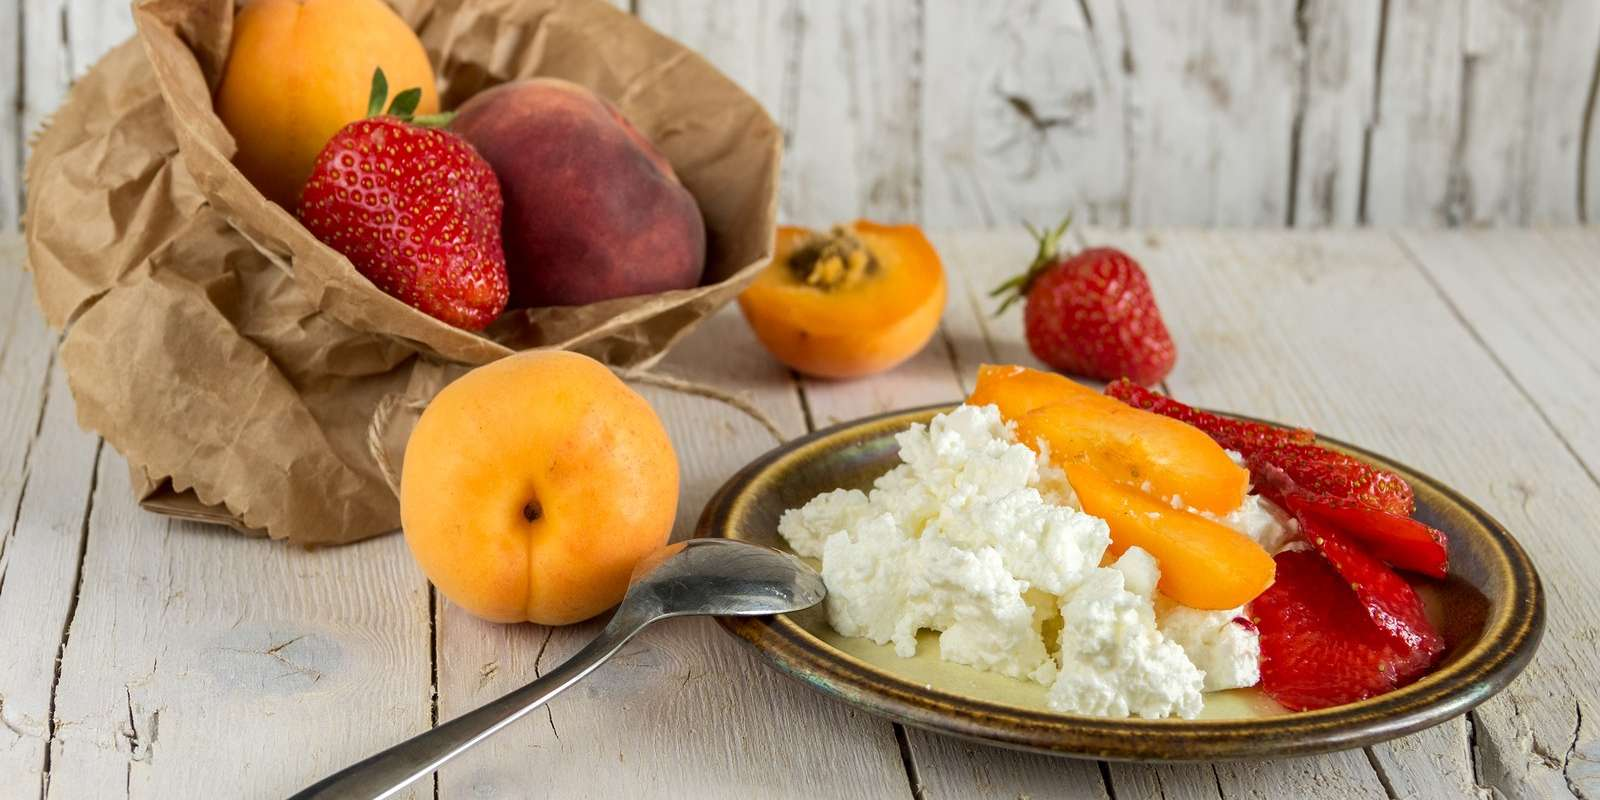 Bariatric-Friendly Cottage Cheese and Fruit